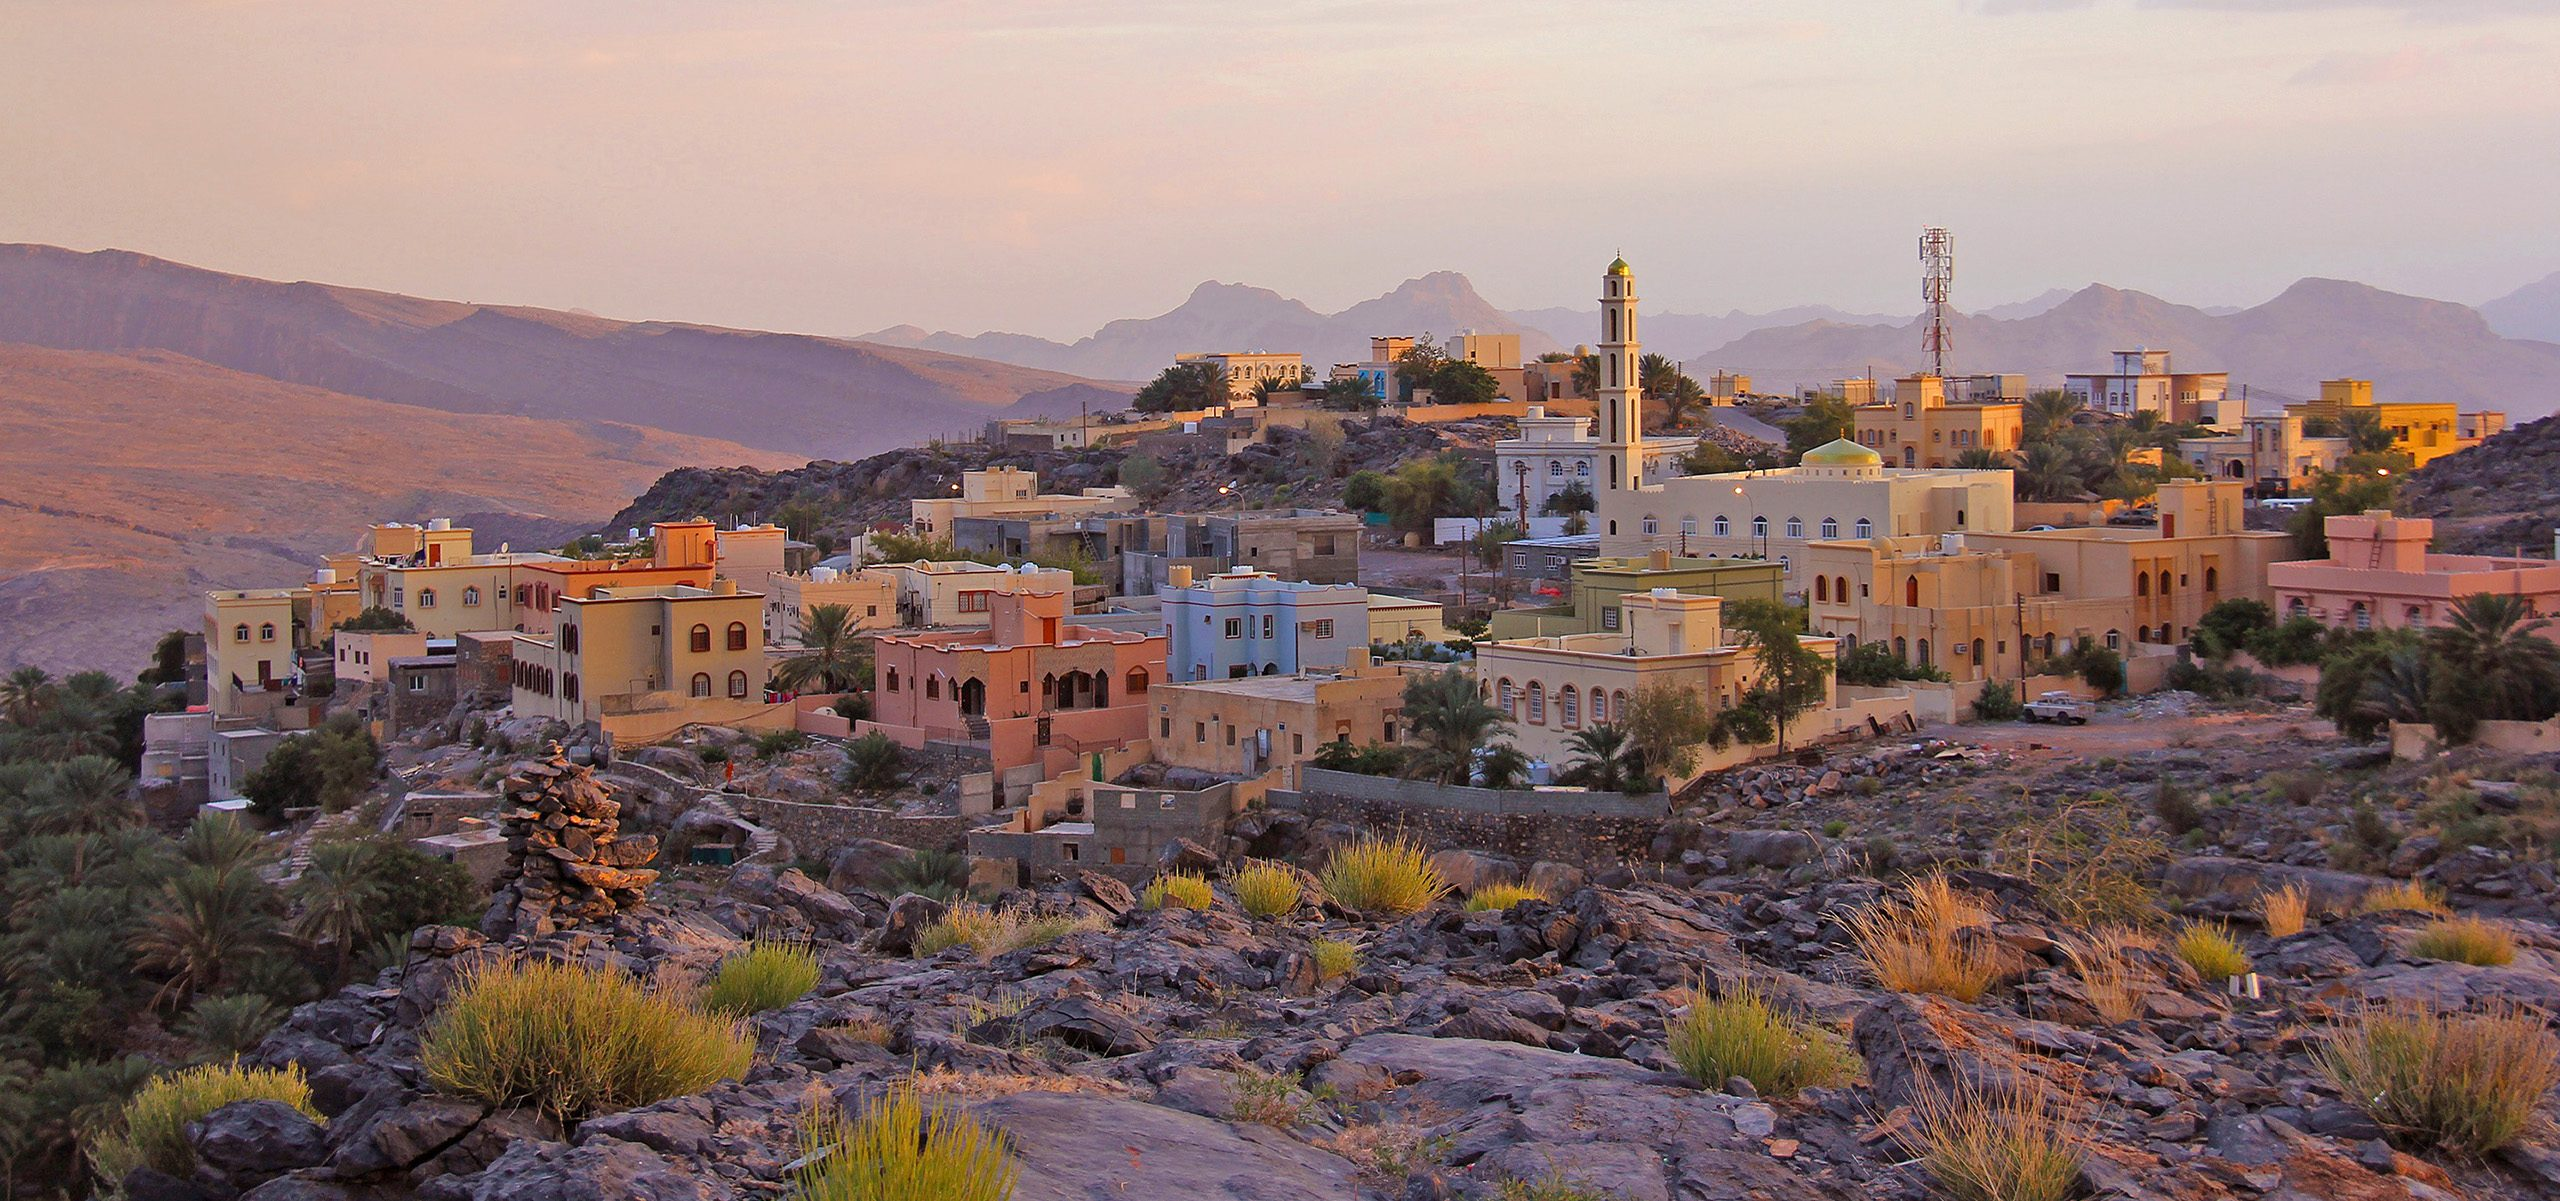 Oman-Nizwa Sunset